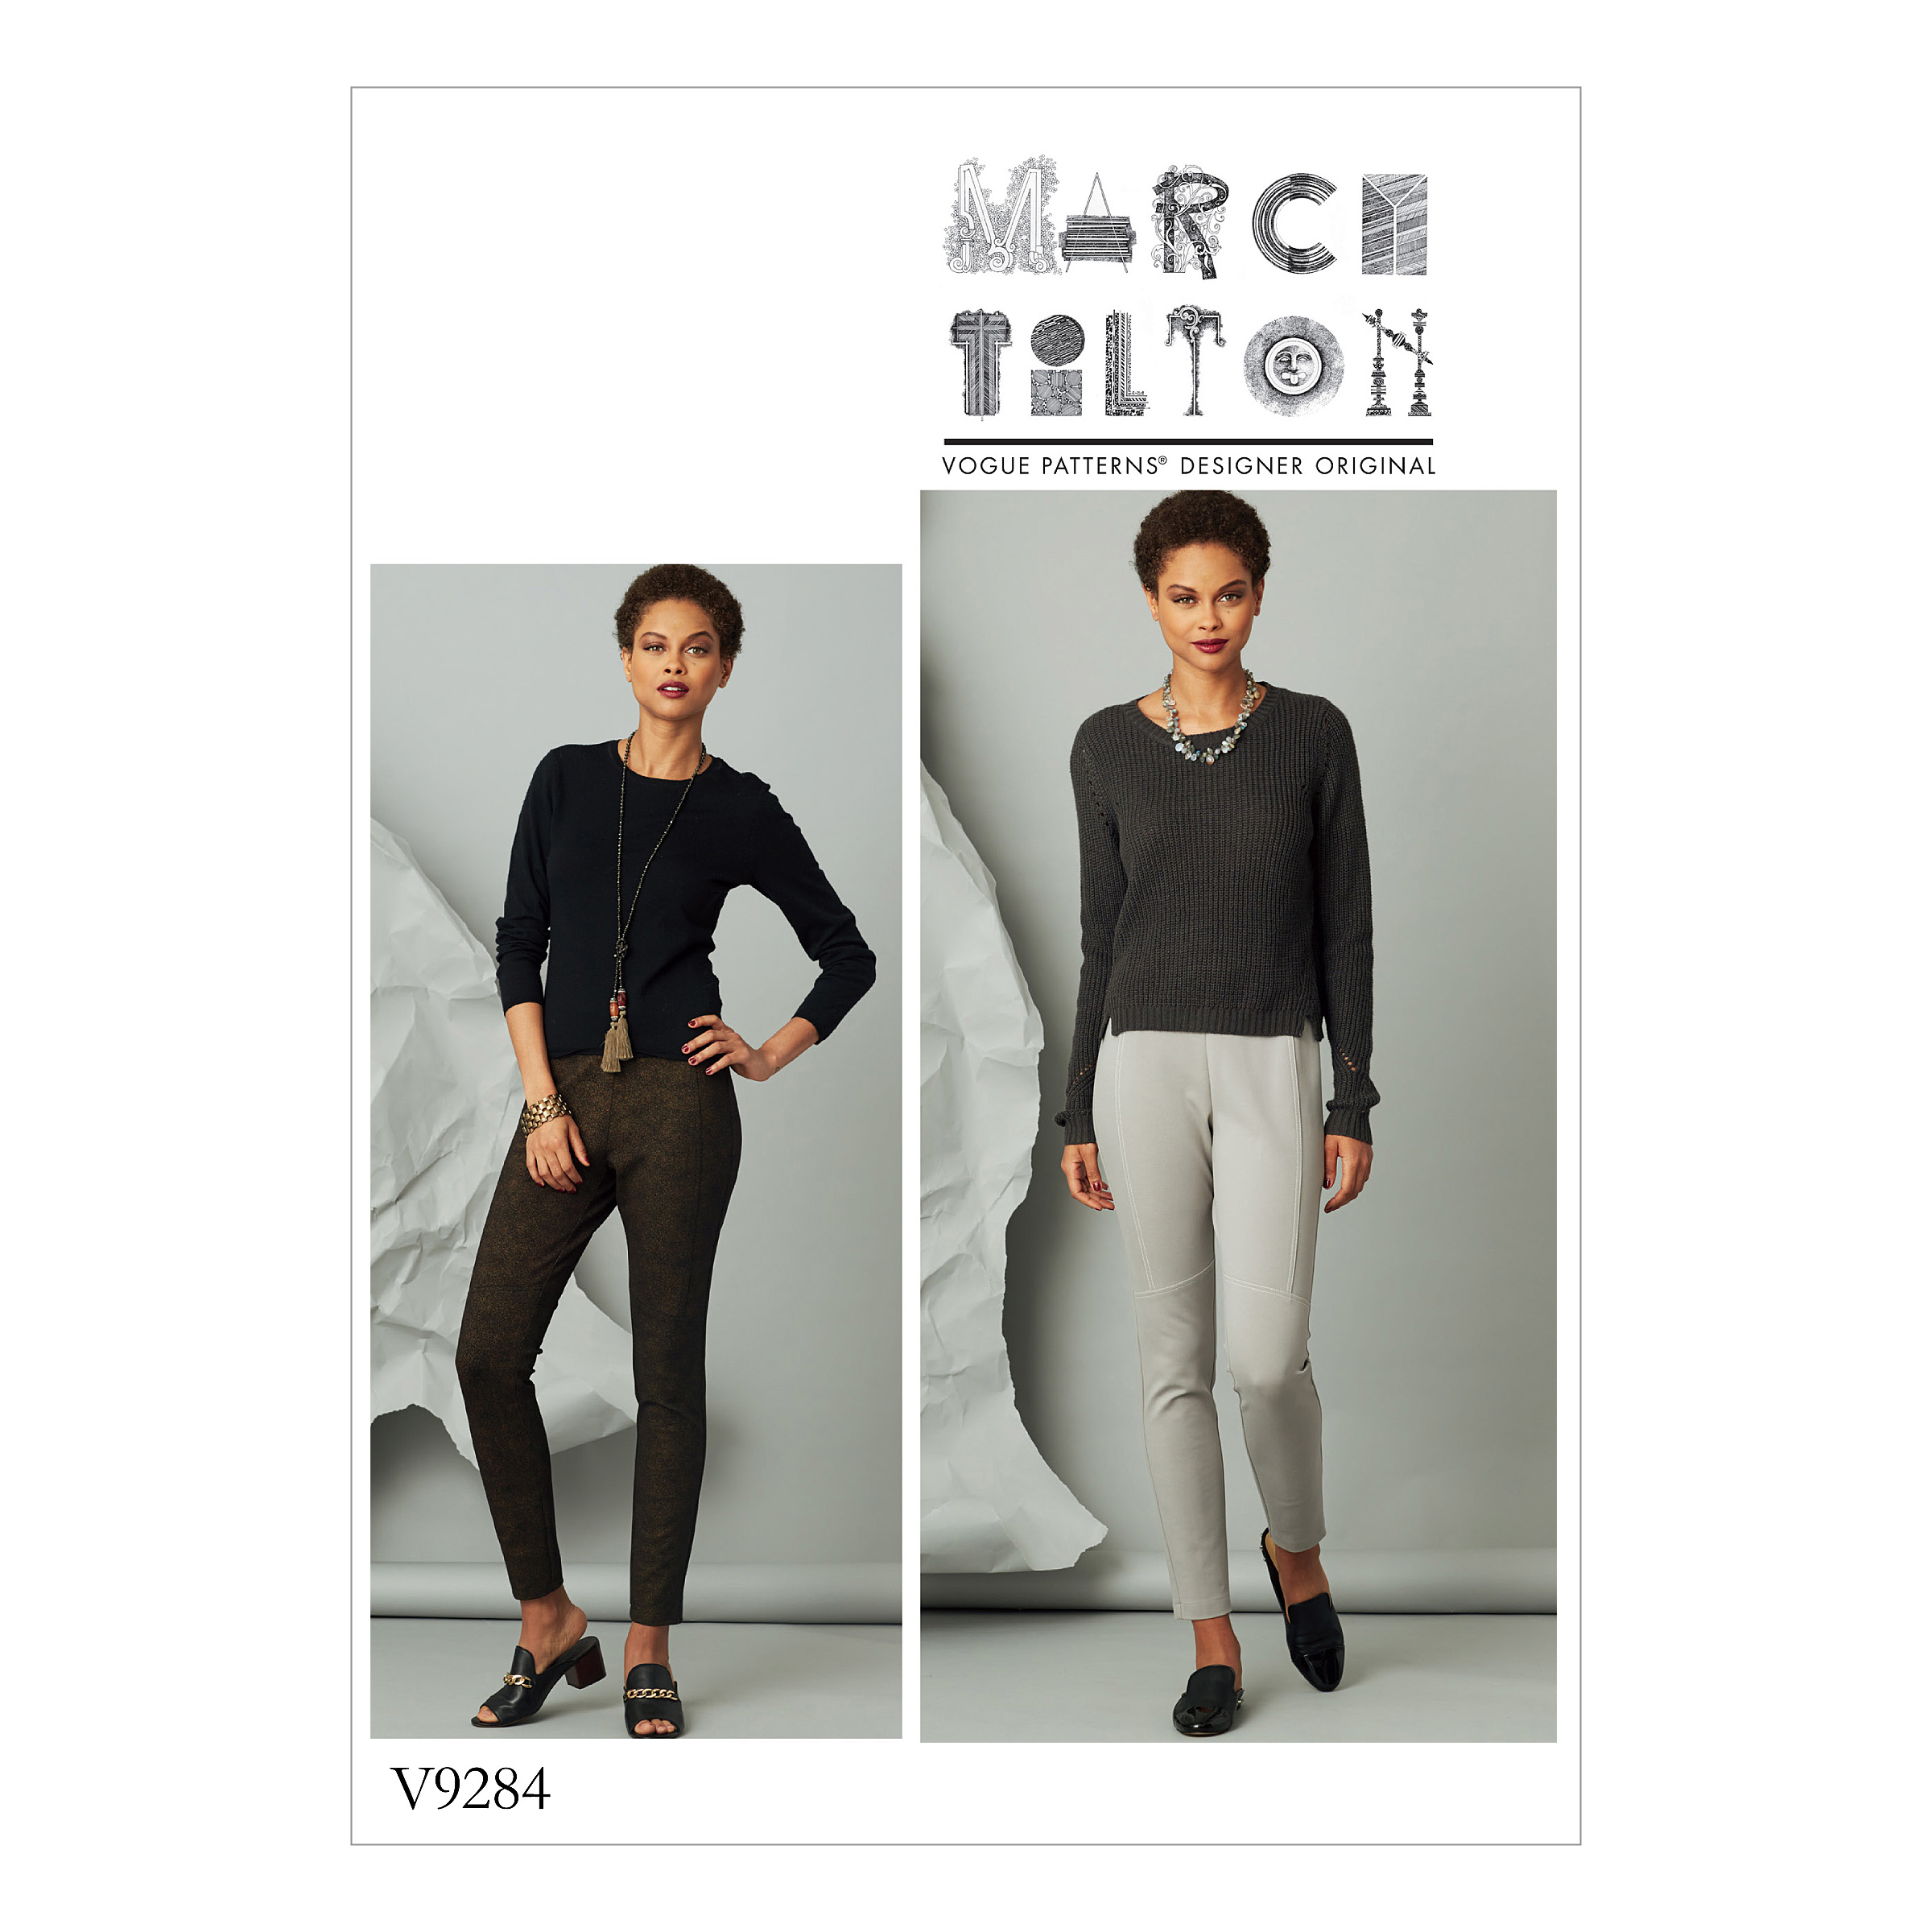 Vogue Patterns Sewing Pattern Misses' Seam-Detail Knit Pants-OSZ